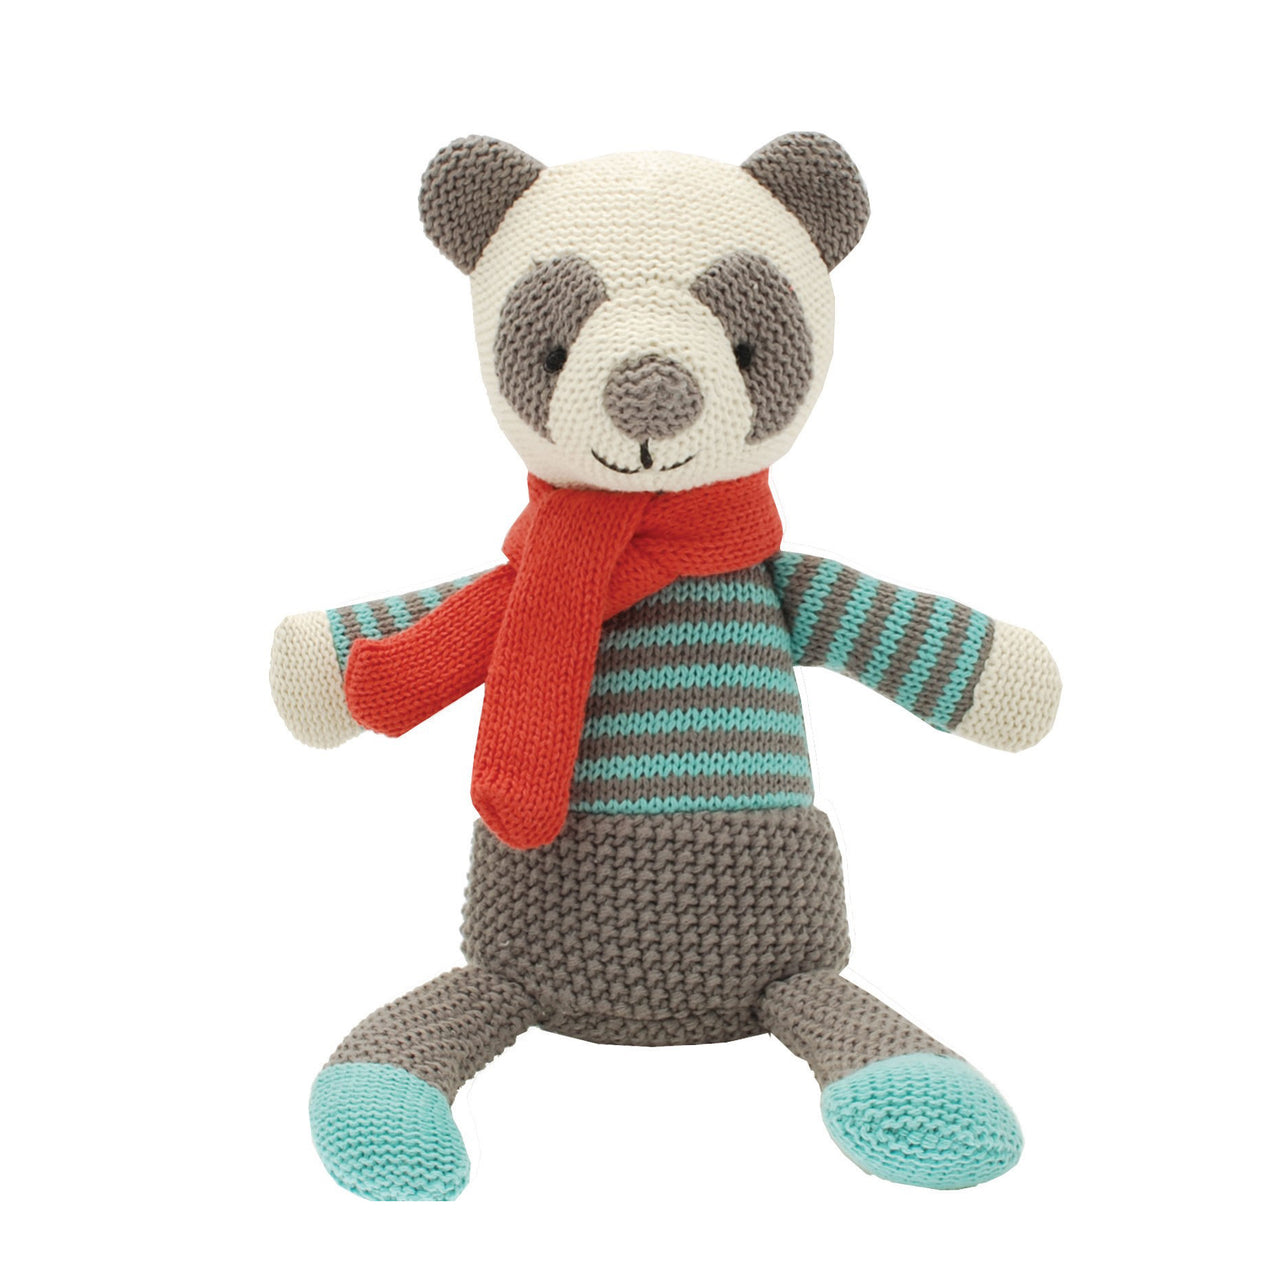 Paddy Panda, a soft toy with a big friendly face, wearing a striped jumper in mint and grey with a bright red scarf.